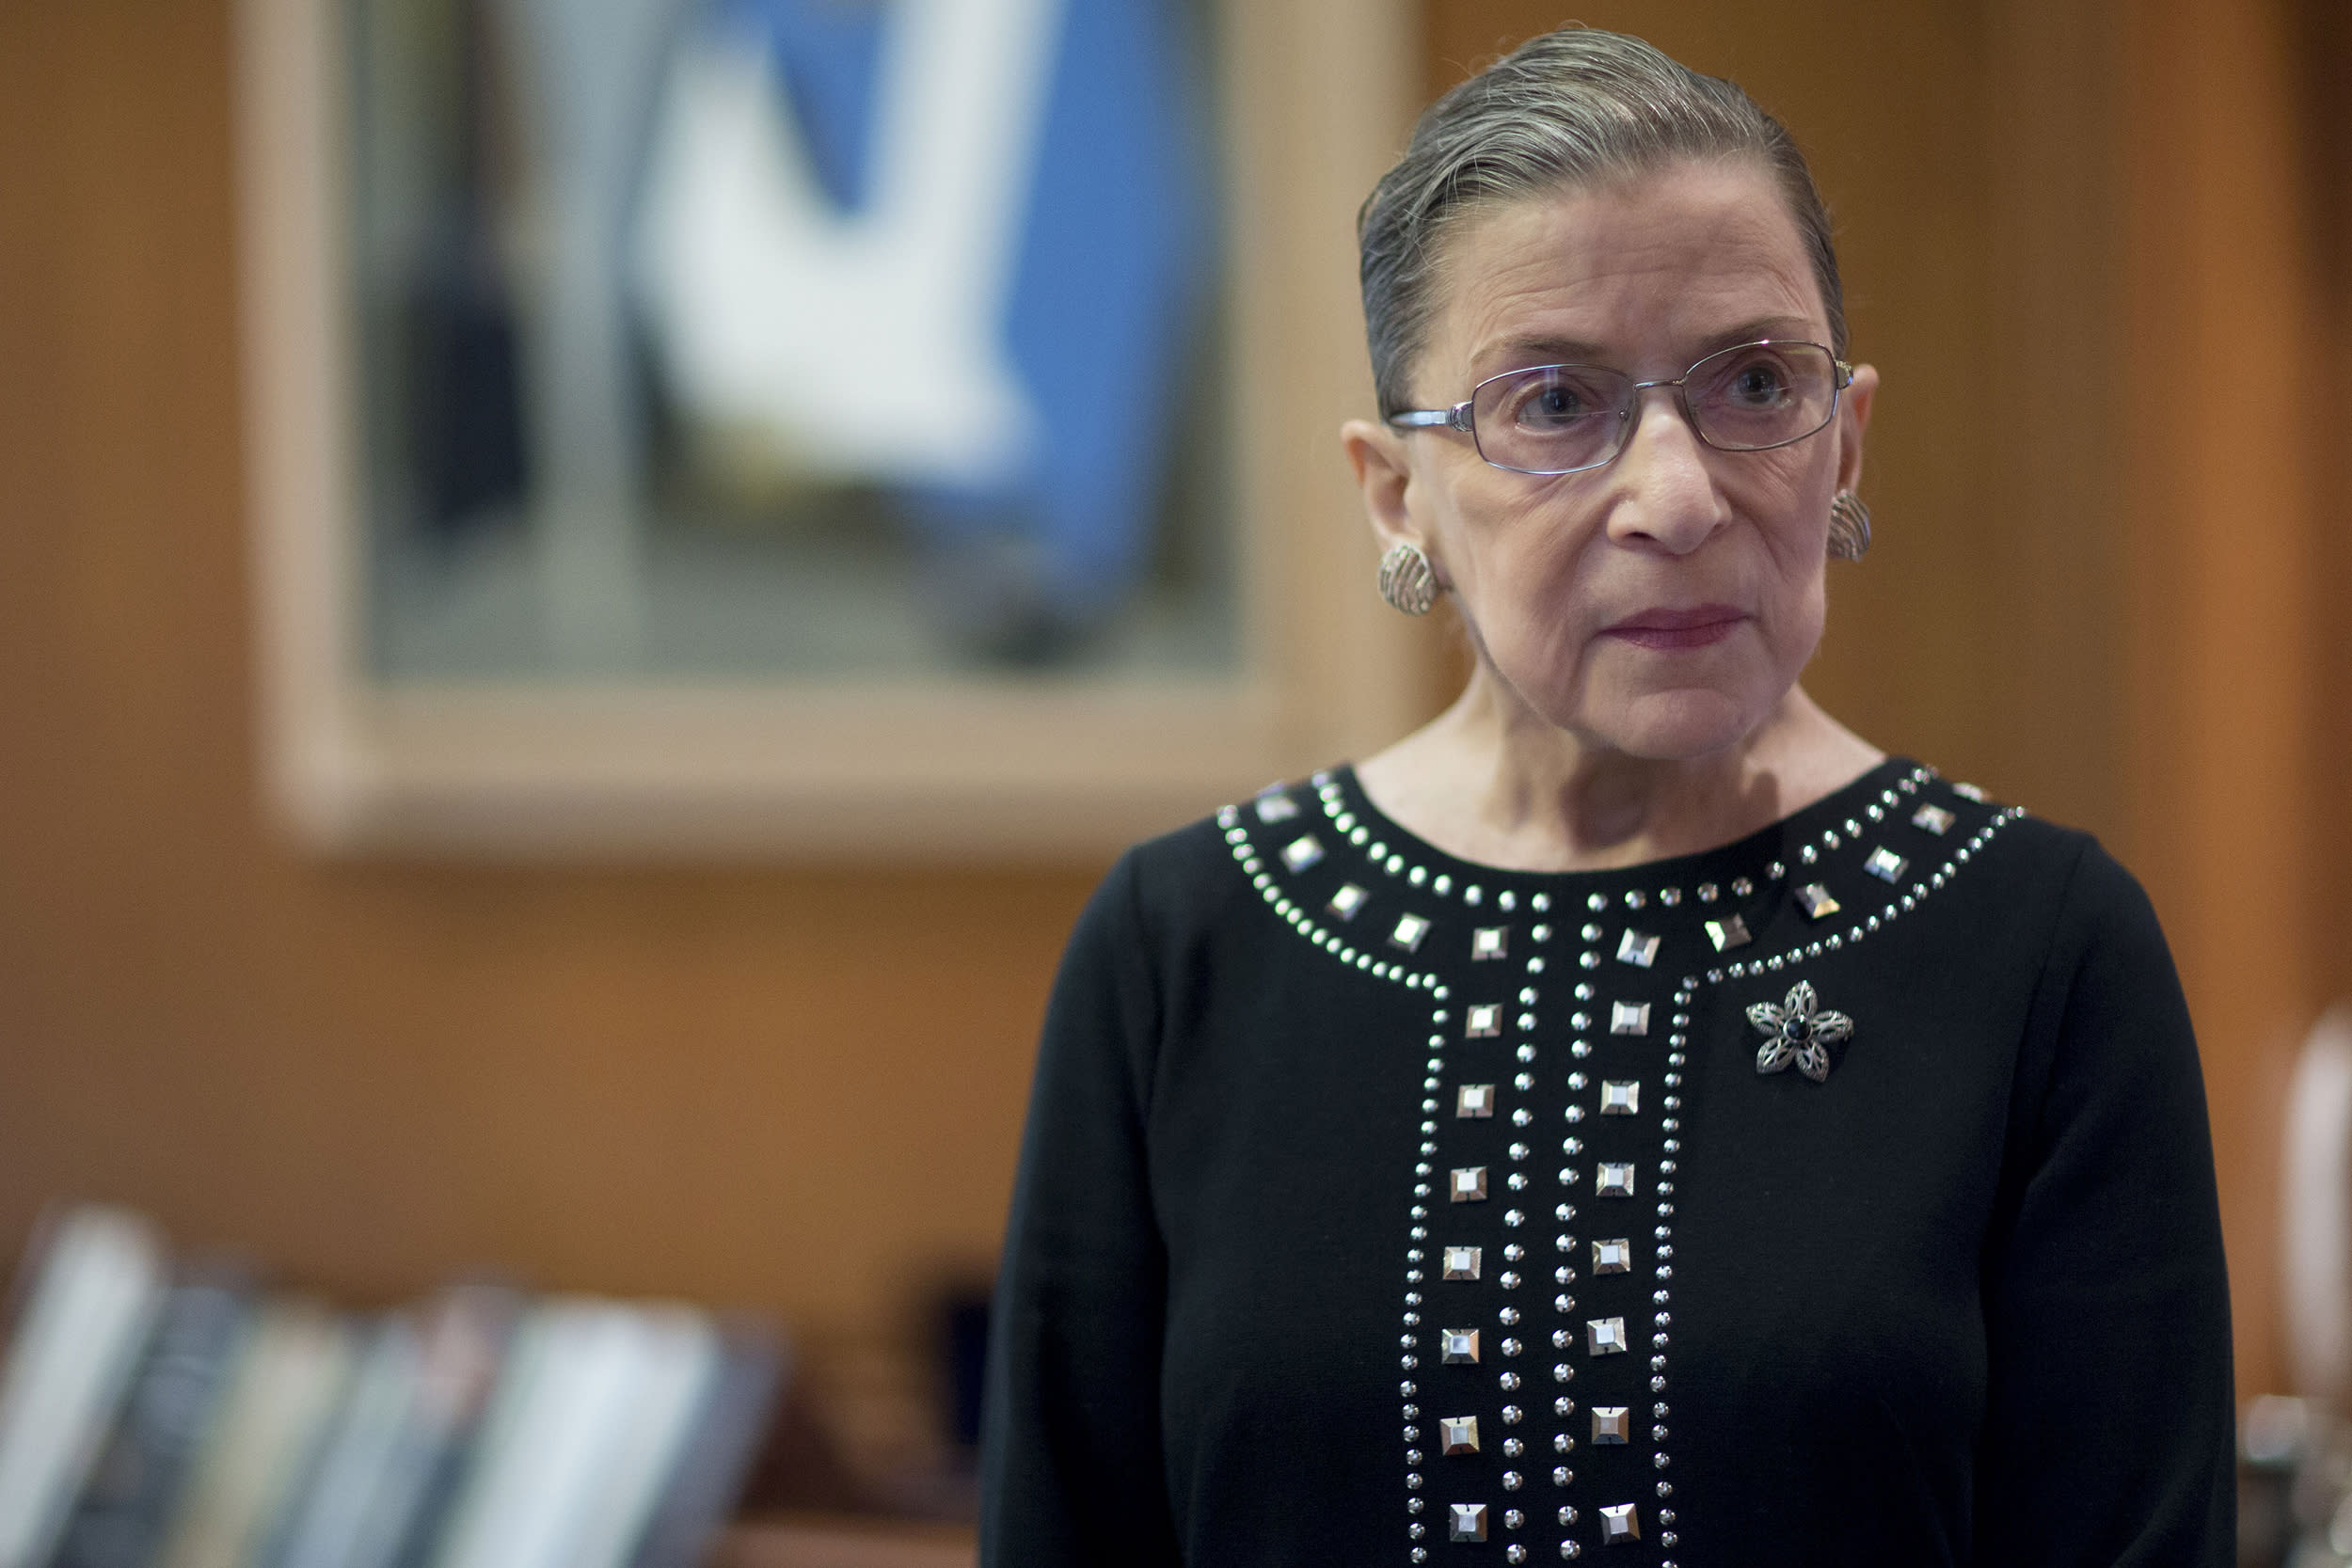 A voice for the 'excluded' and 'oppressed': Latinos remember Justice Ruth Bader Ginsburg